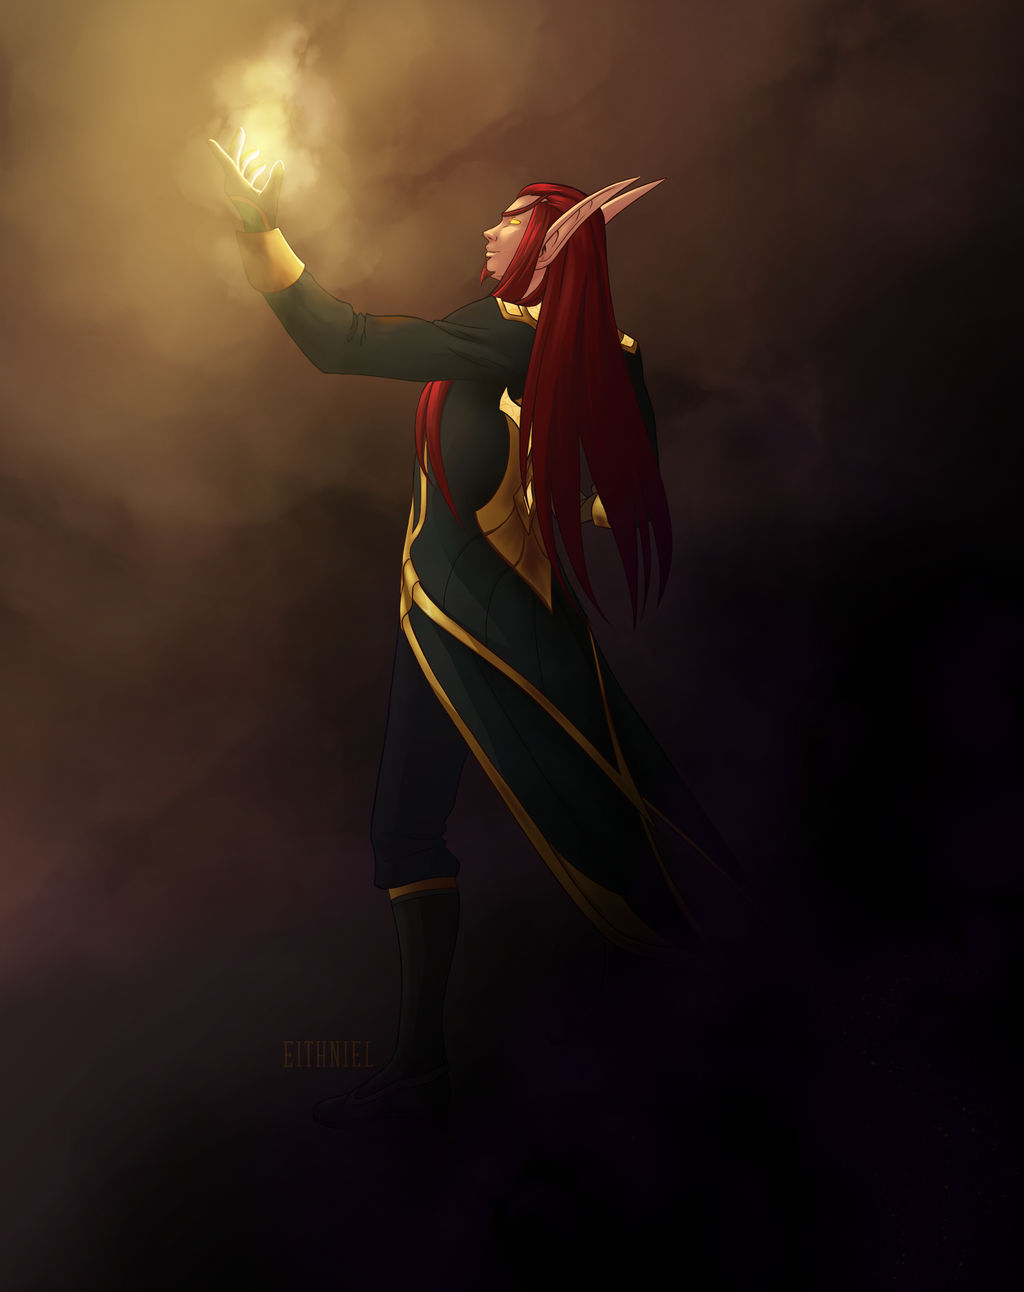 A light in the darkness by Eithniel